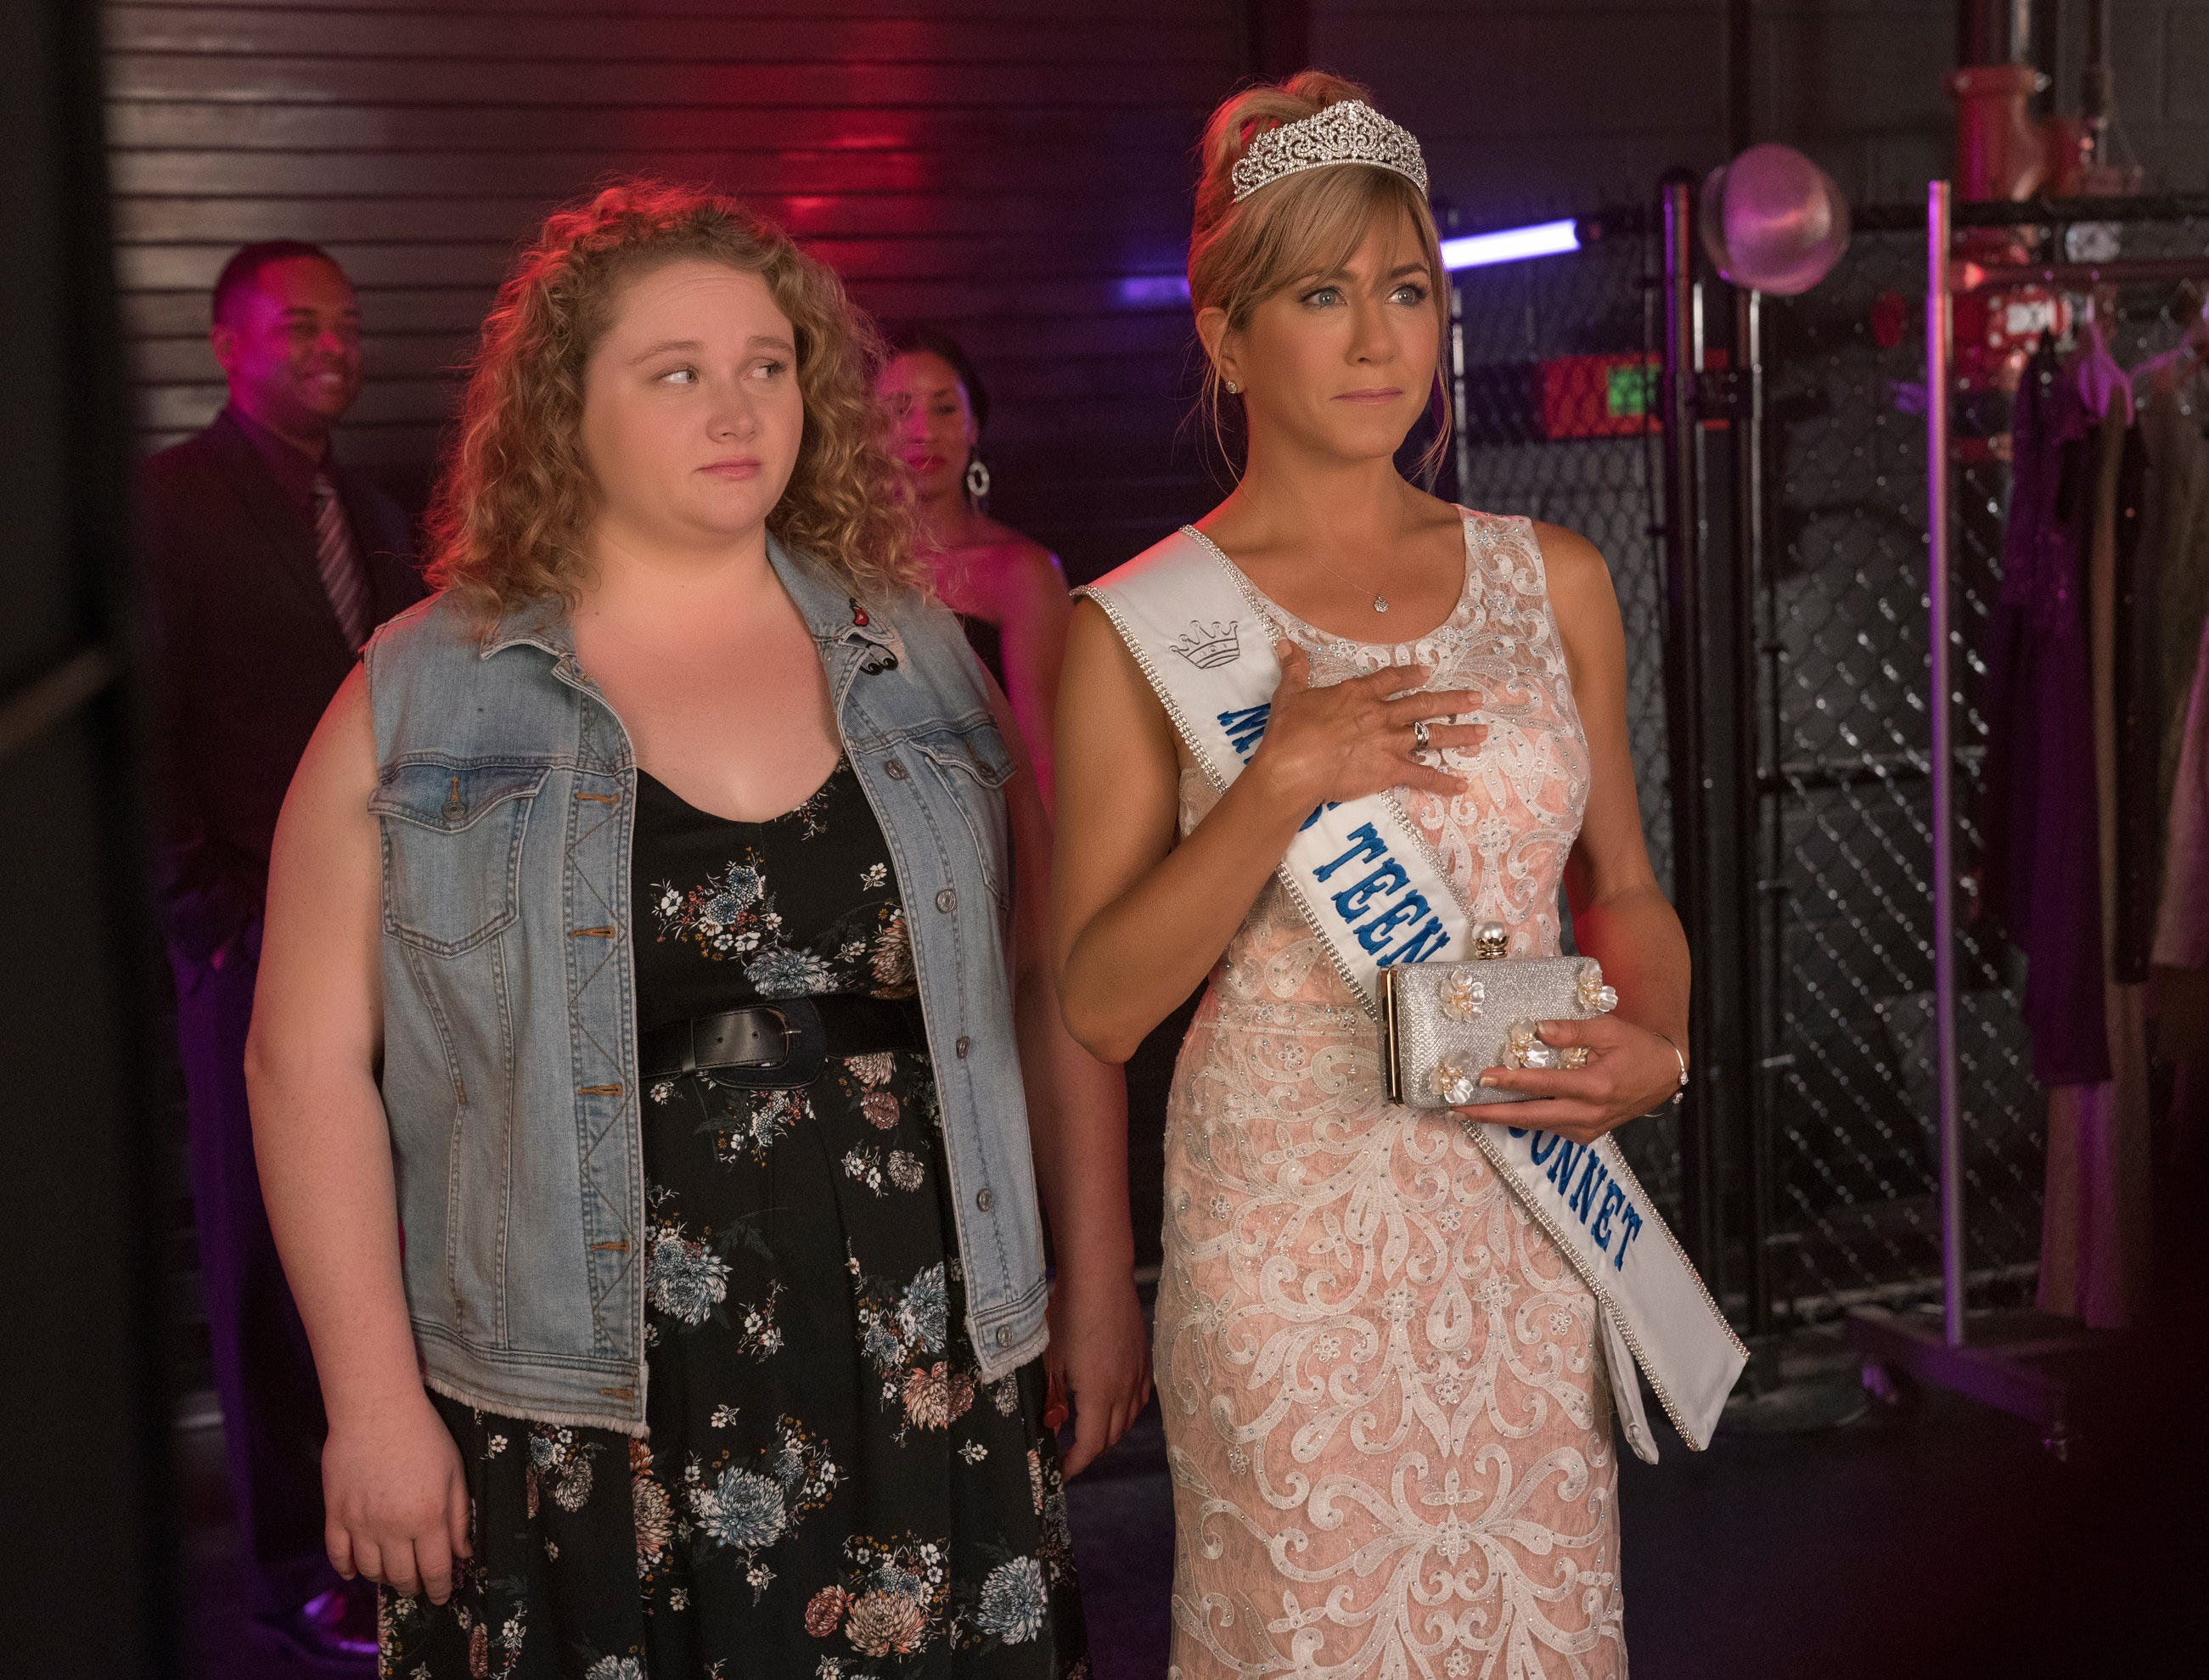 """Willowdean (Danielle Macdonald) and her beauty queen mother, Rosie (Jennifer Aniston), have a challenging relationship in """"Dumplin'."""""""